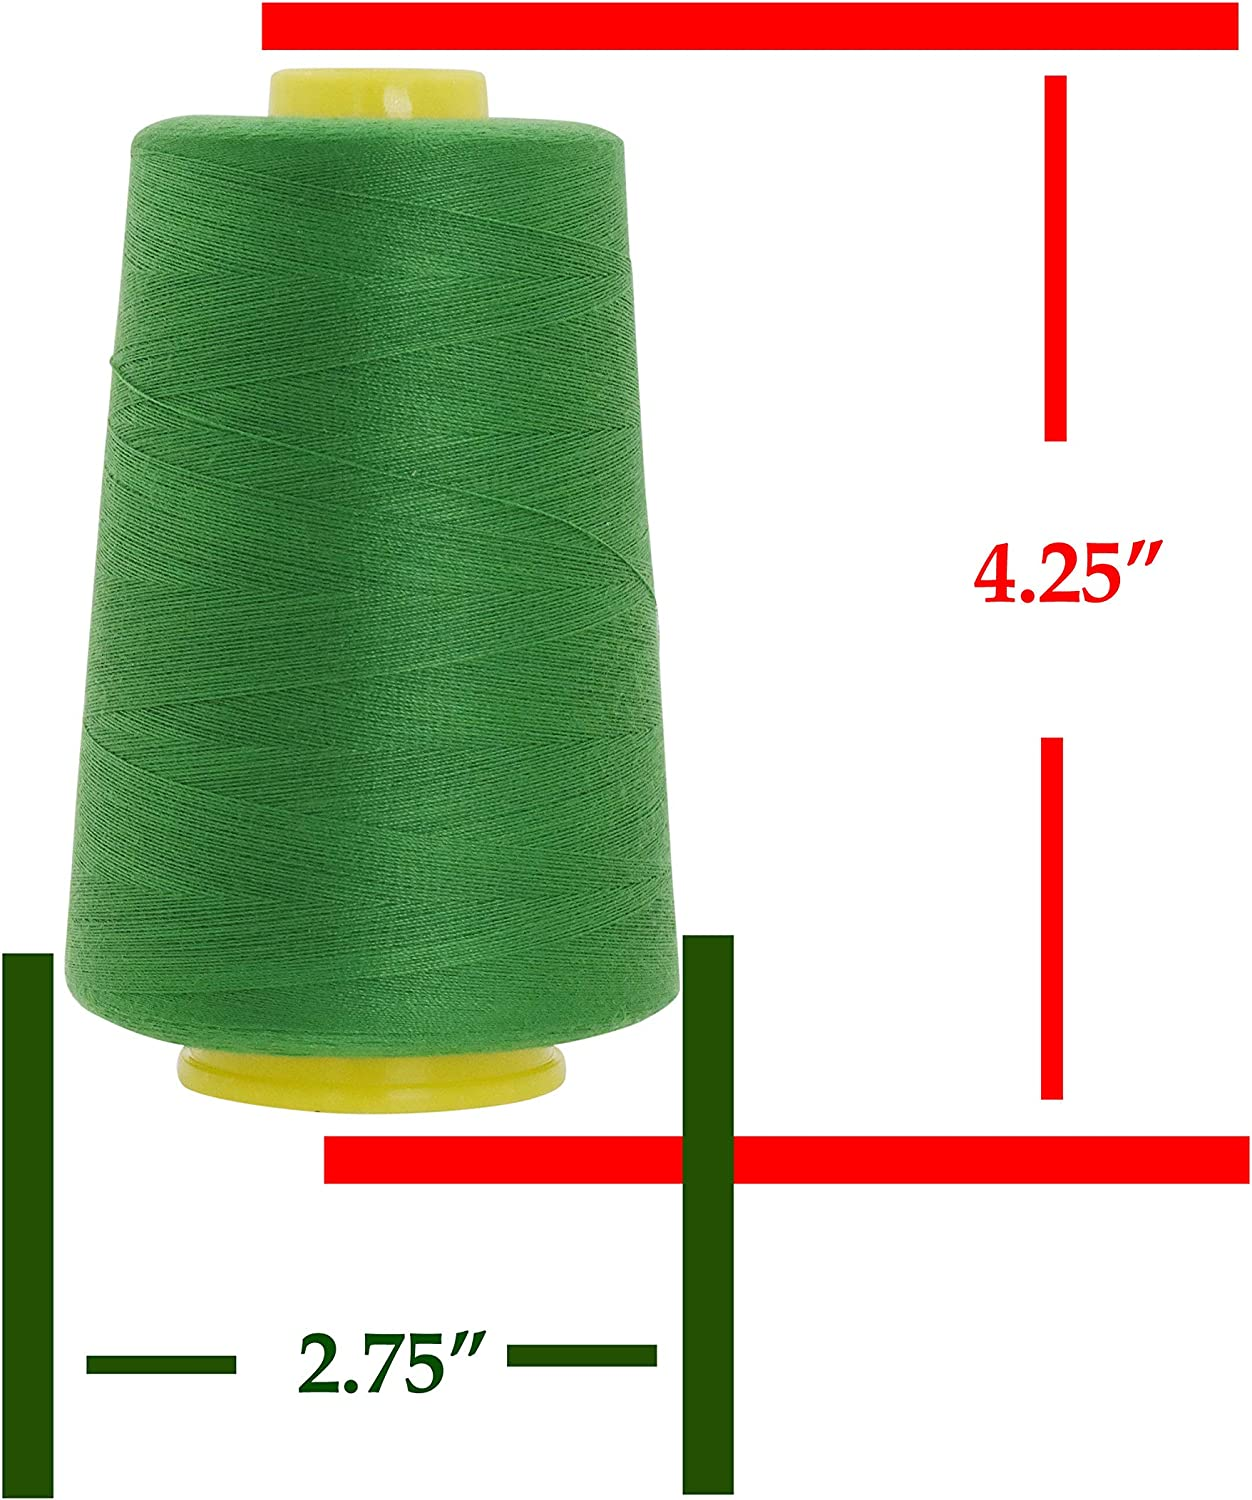 Overlock 4 Cones 6000 Yards Each, Red Mandala Crafts All Purpose Sewing Thread from Polyester for Serger Sewing Machine Quilting